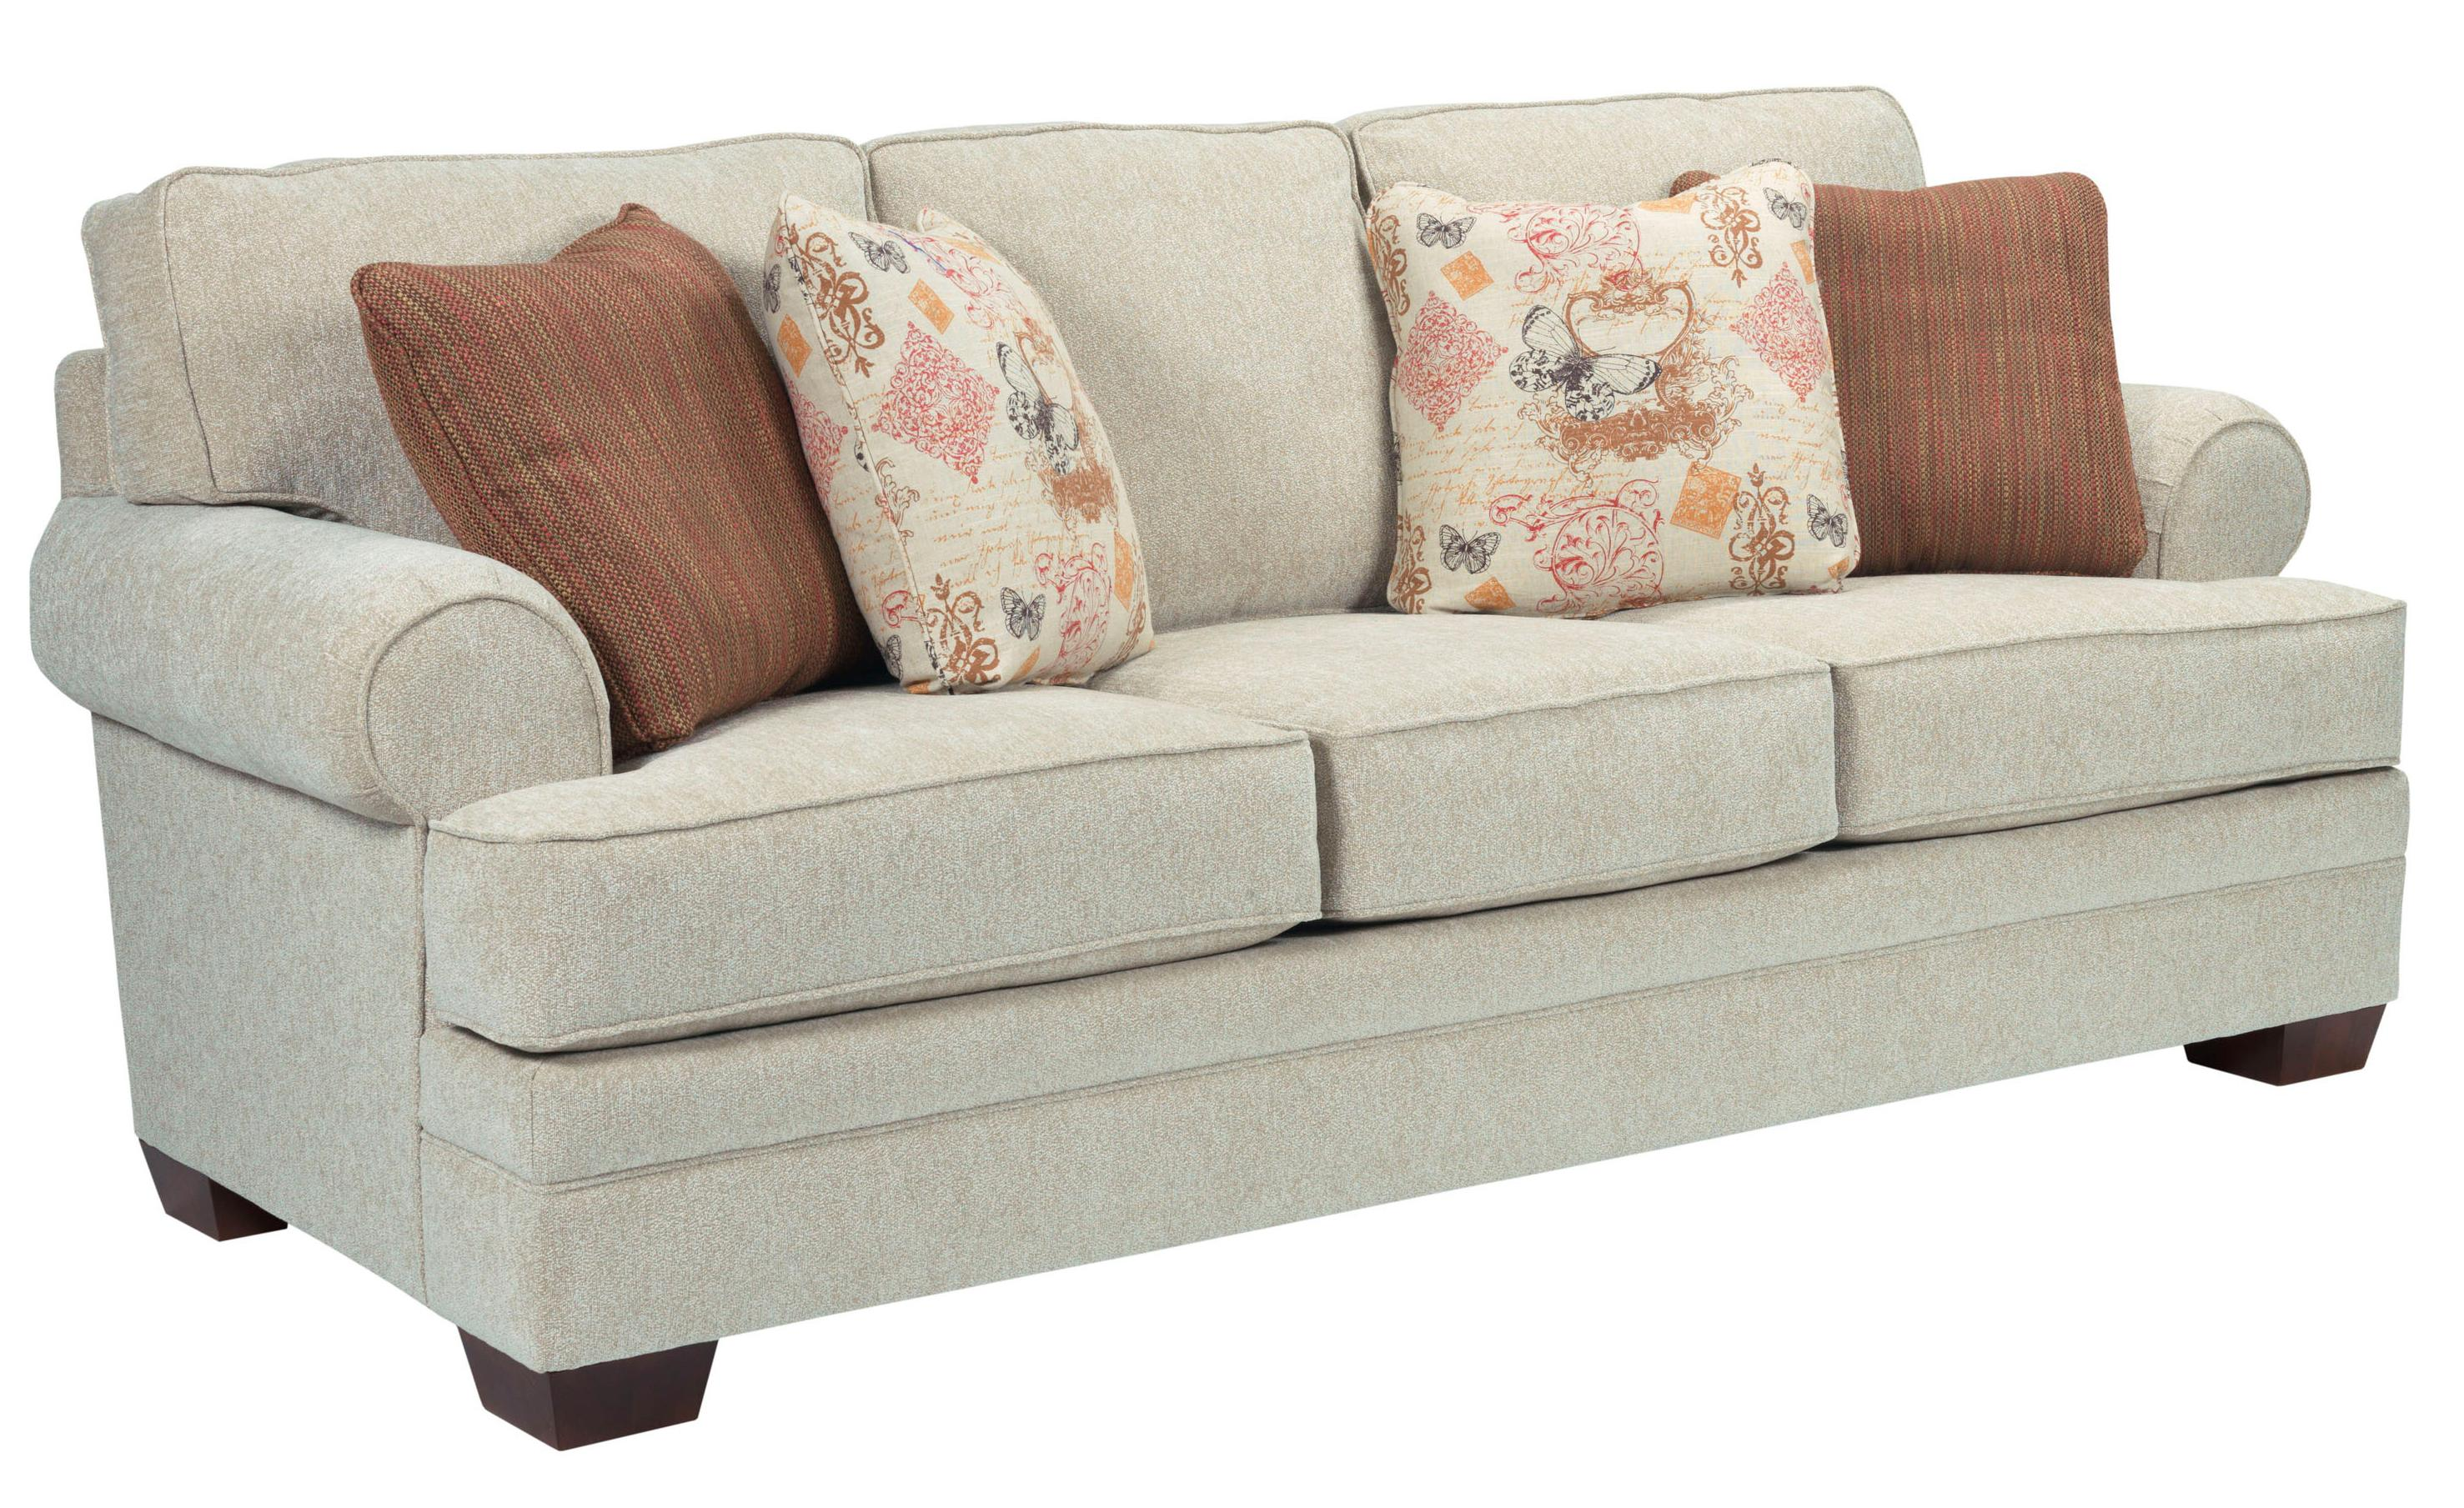 Broyhill Furniture Landon Transitional Stationary Sofa - Item Number: 6608-3